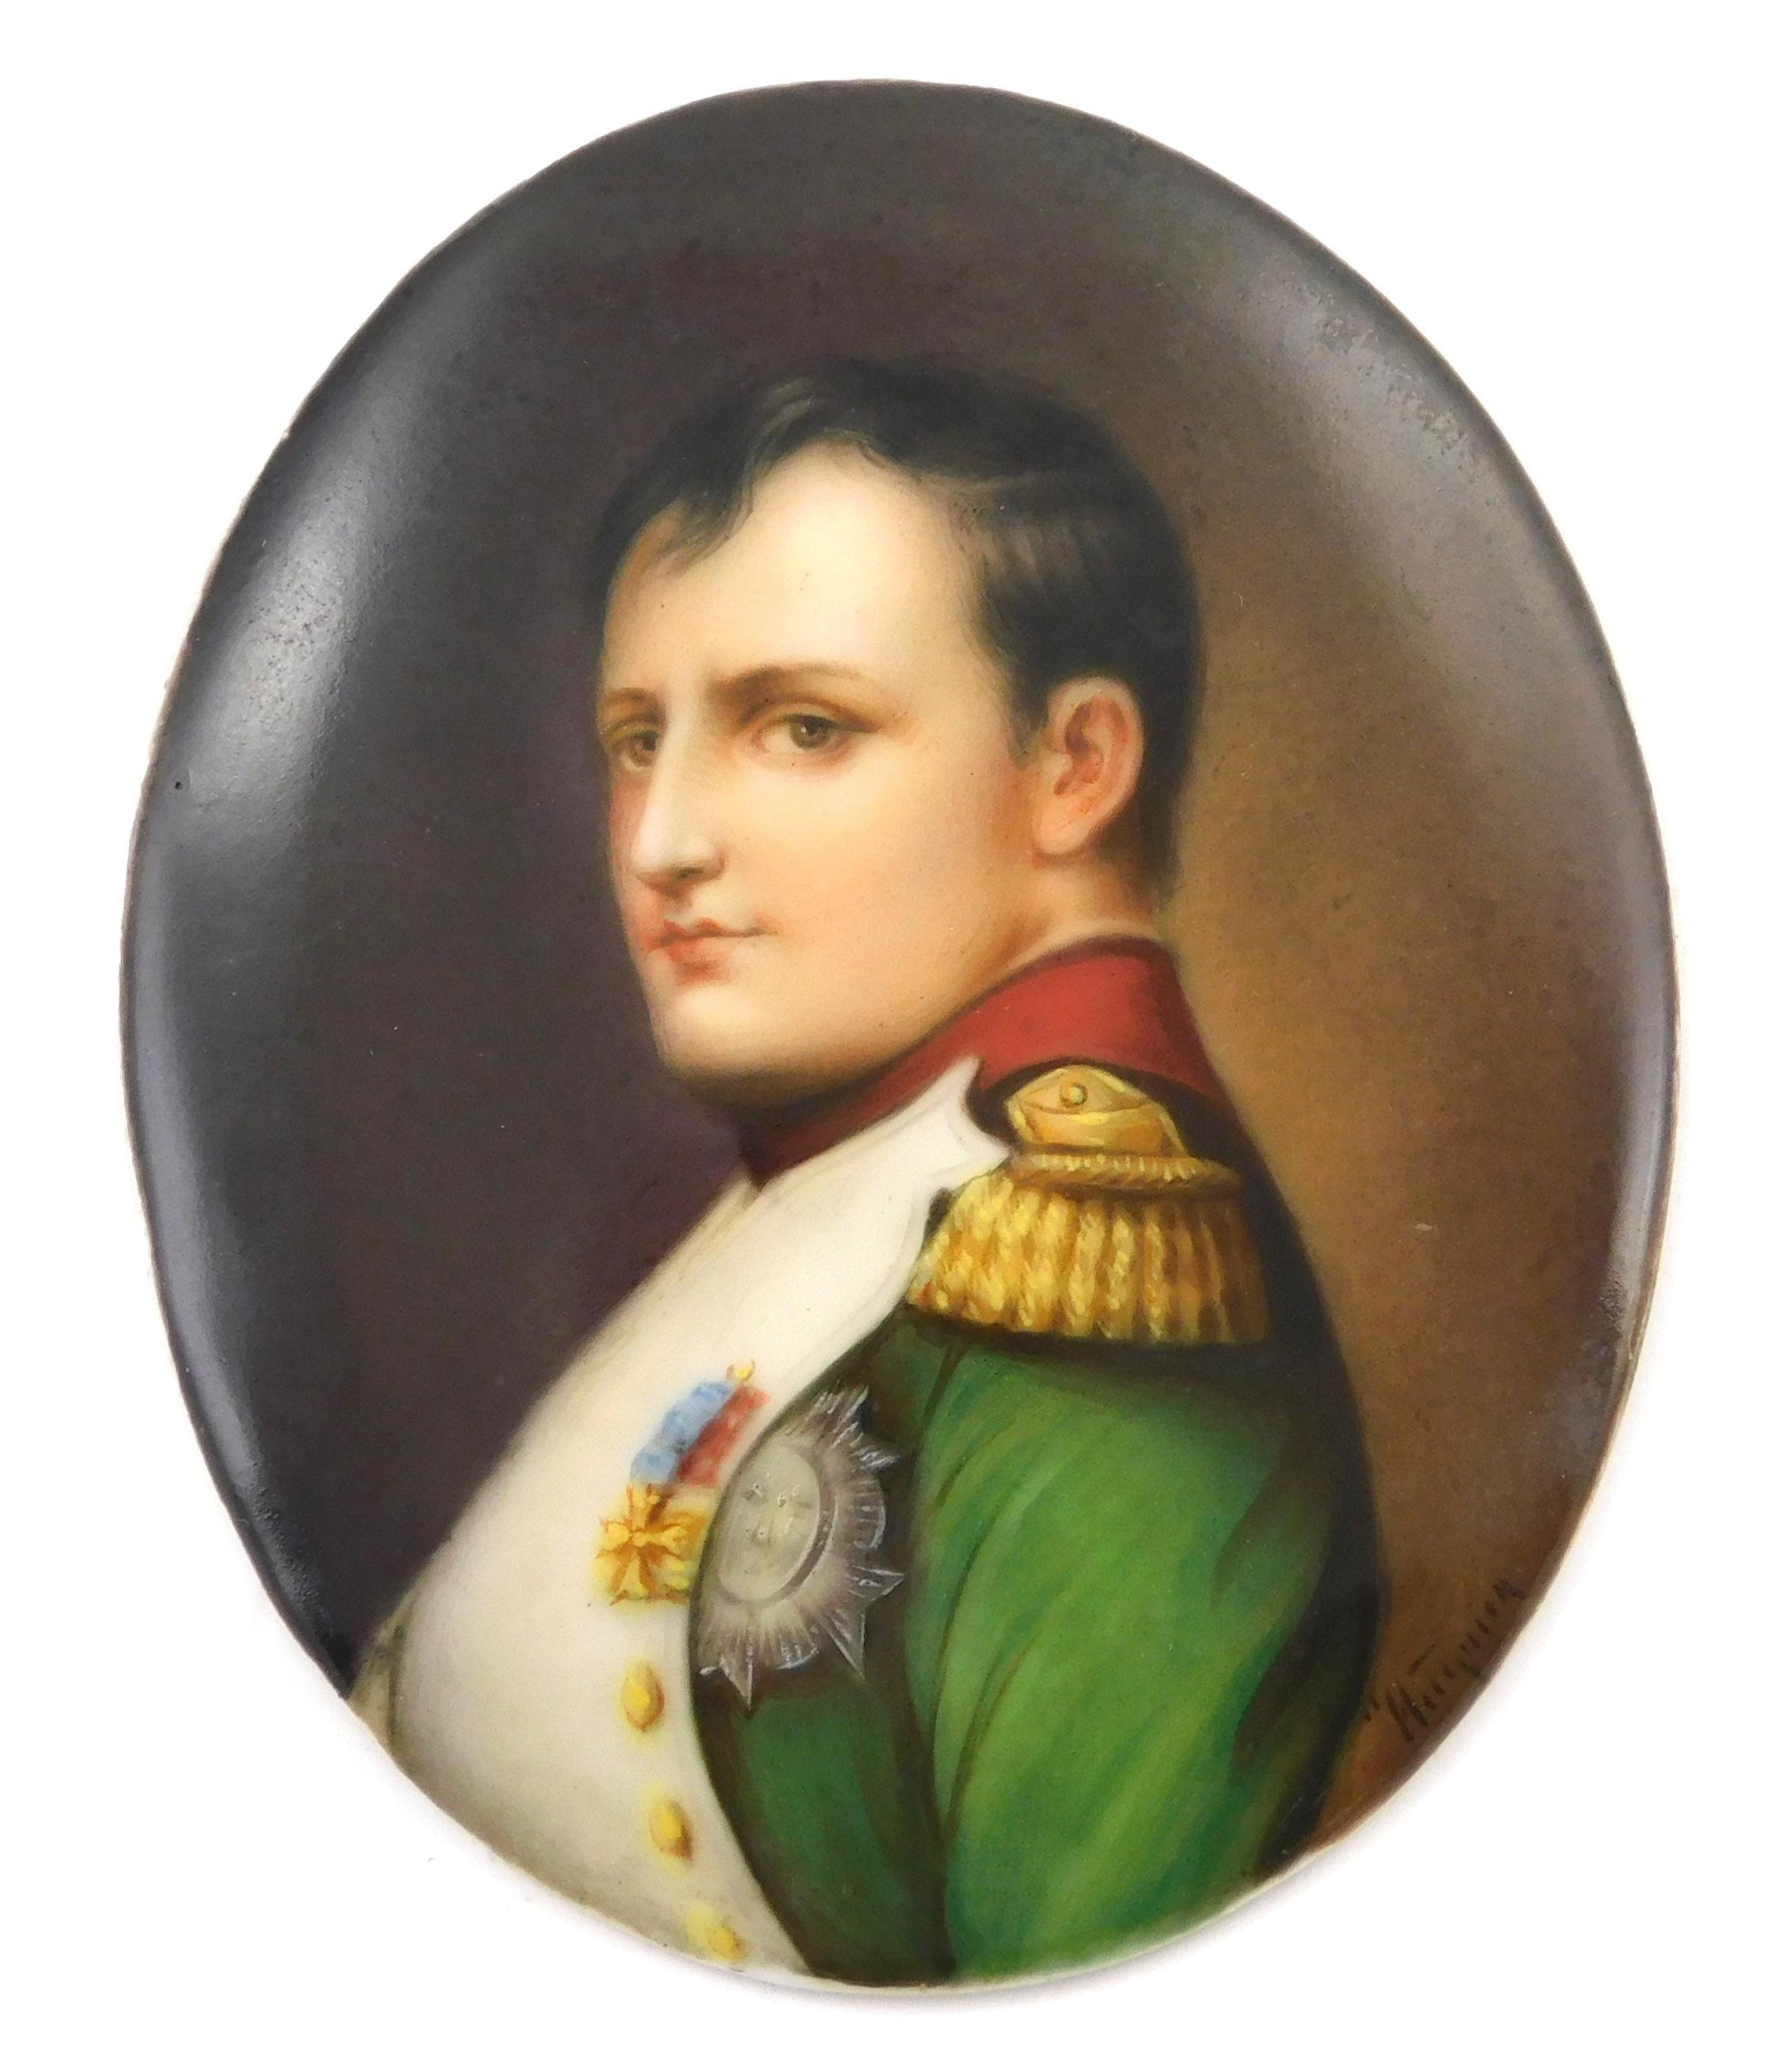 MINIATURE: Napoleon profile portrait, oval porcelain support, wearing green jacket with red collar and military medals, with paper l...